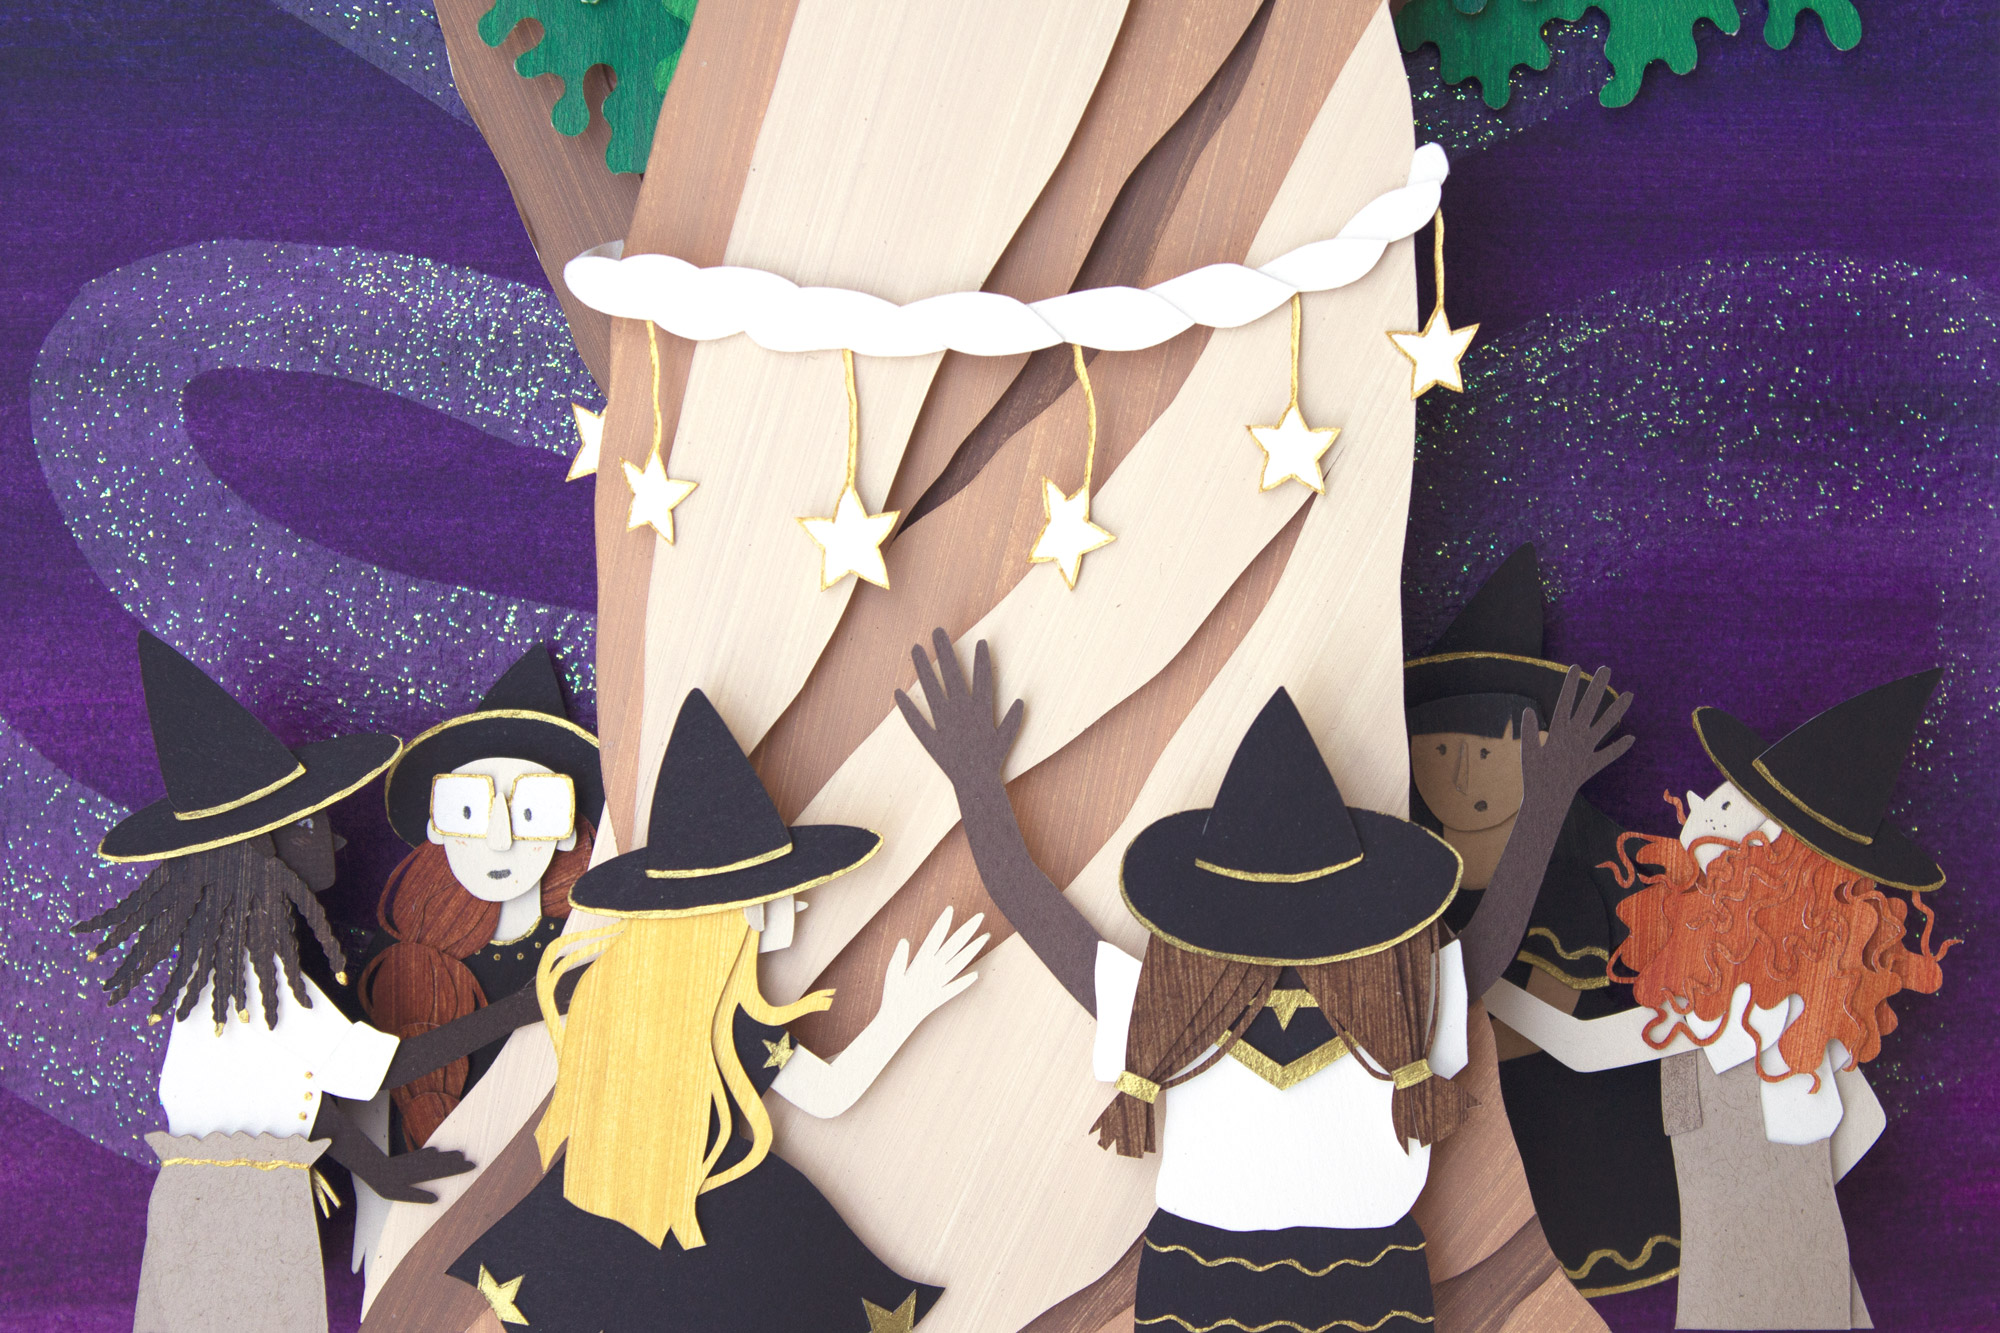 Closeup of witches